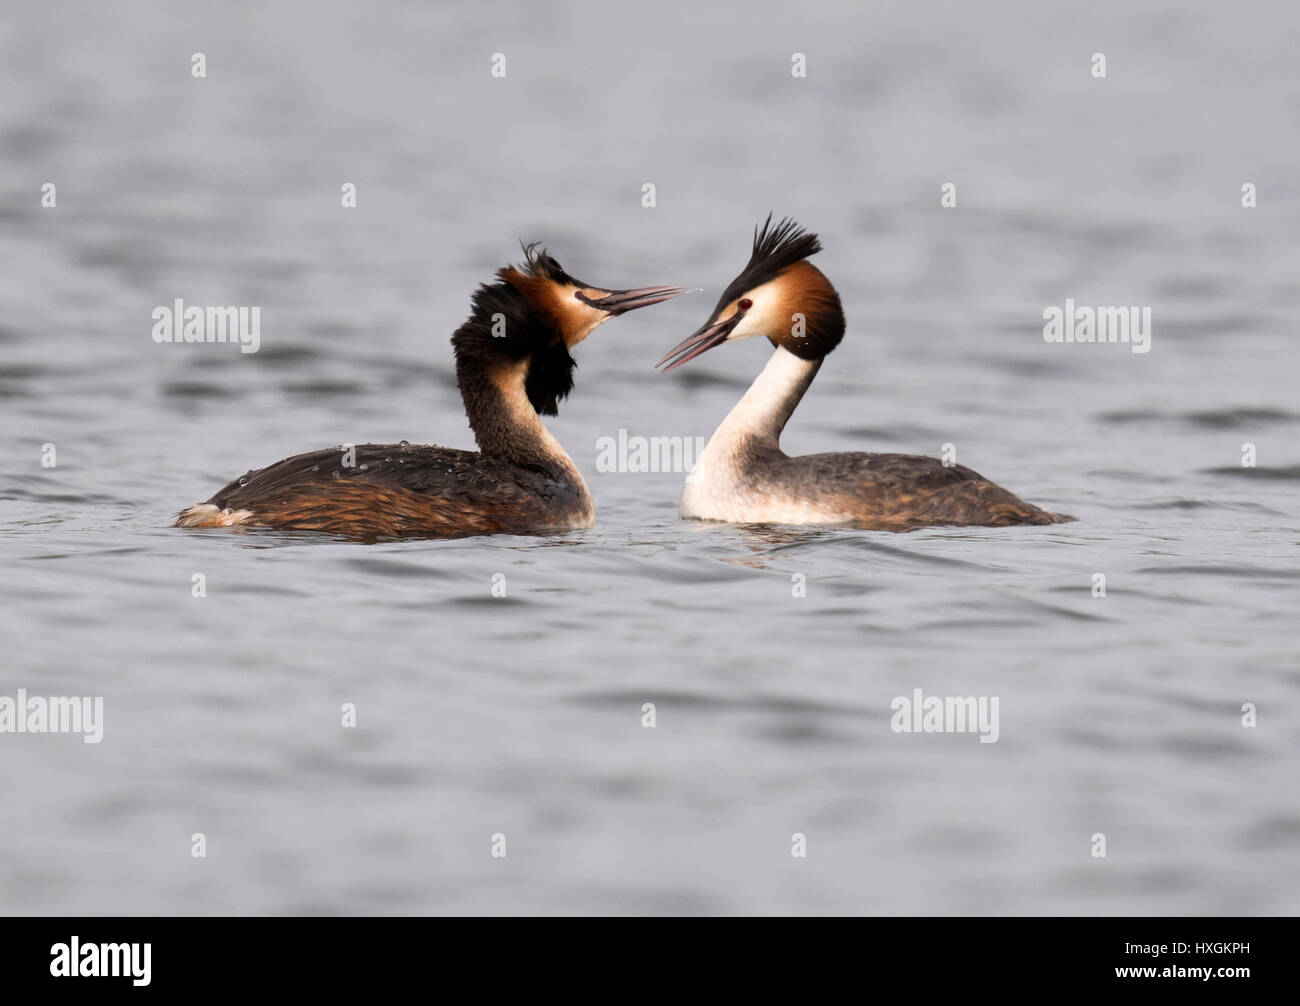 Pair of Great Crested Grebes (Podiceps cristatus) at start of courtship display - Stock Image